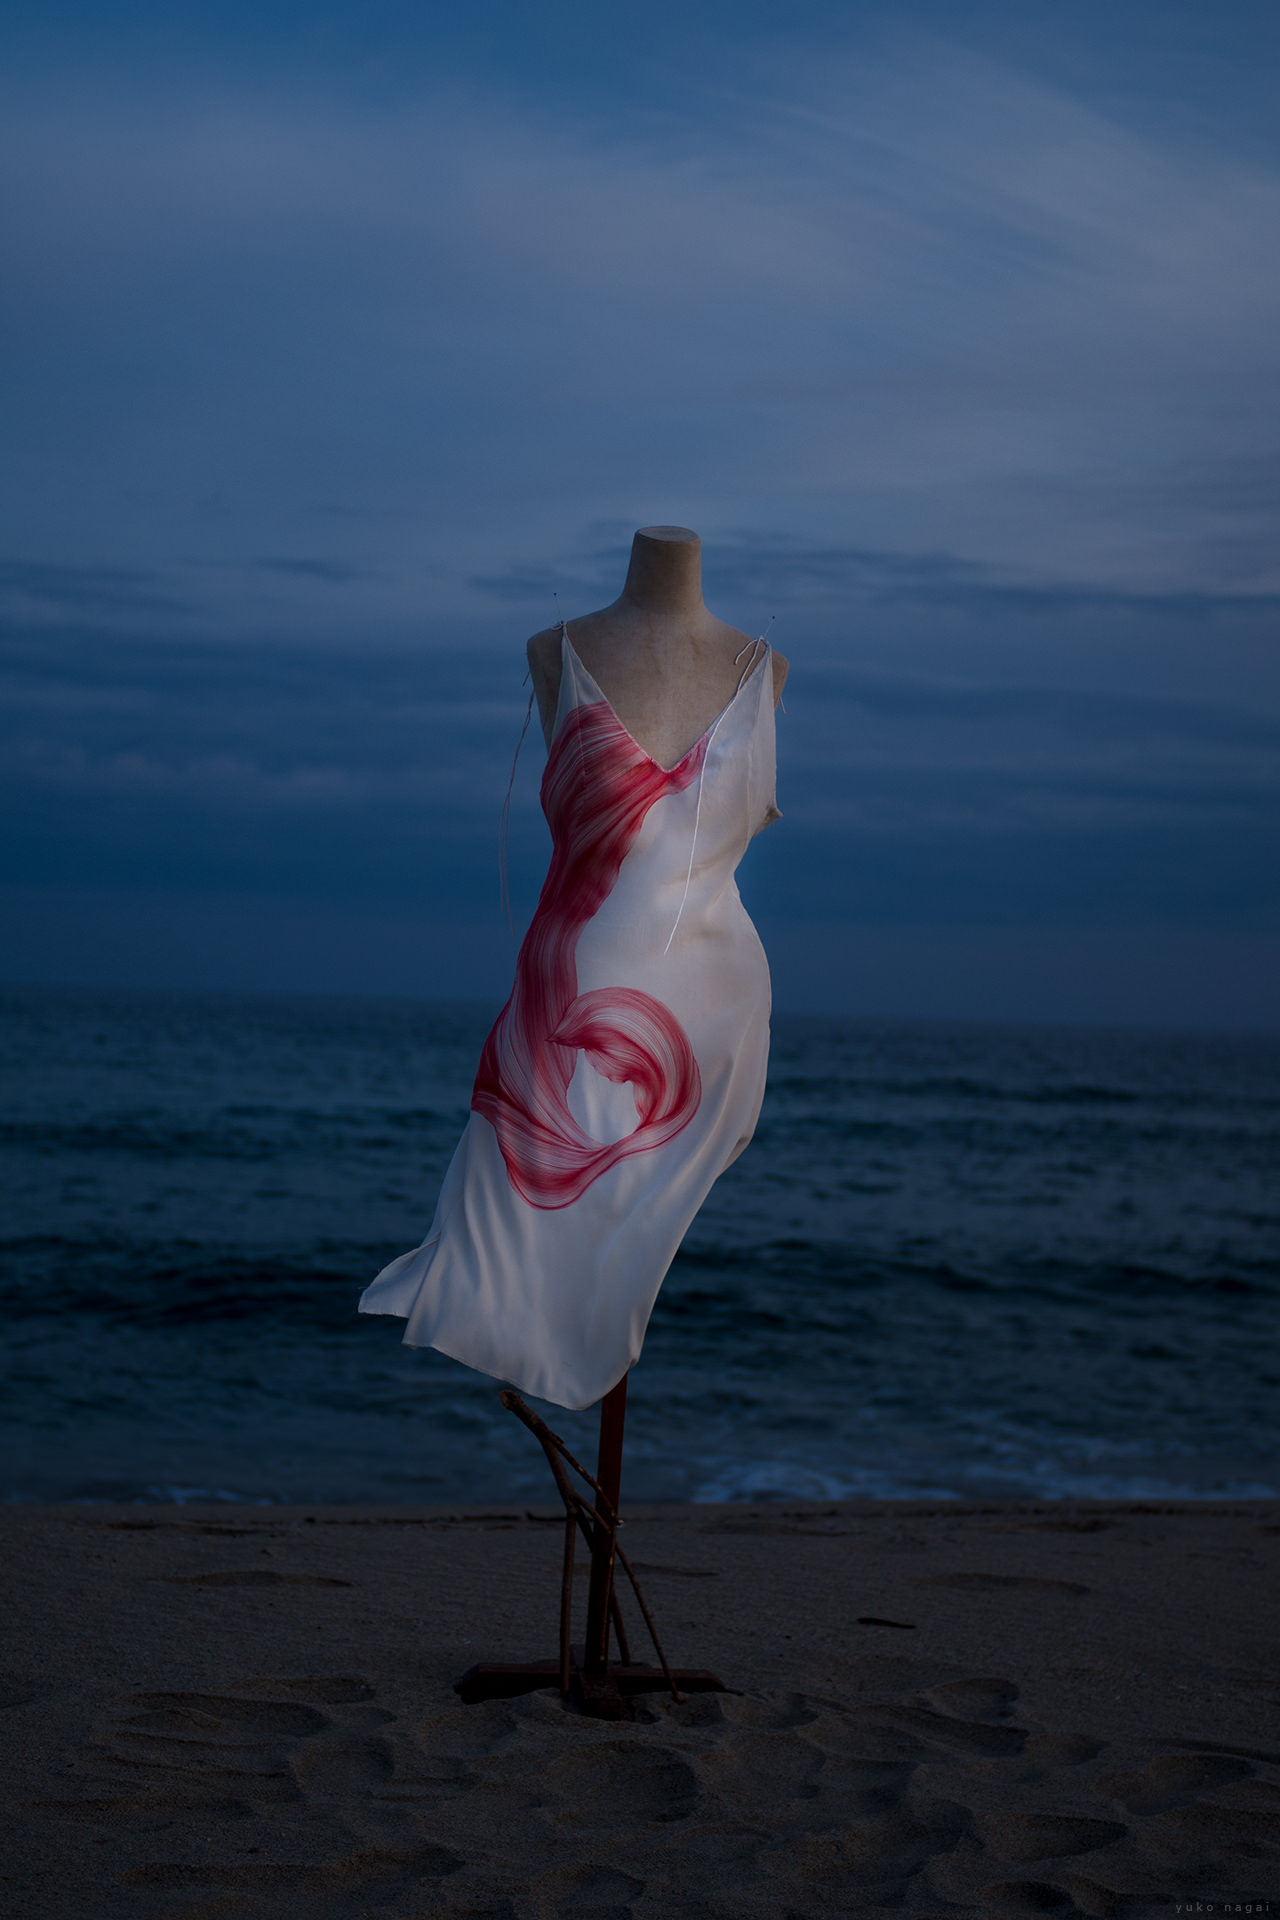 A dress with a lily petal drawing on night beach.